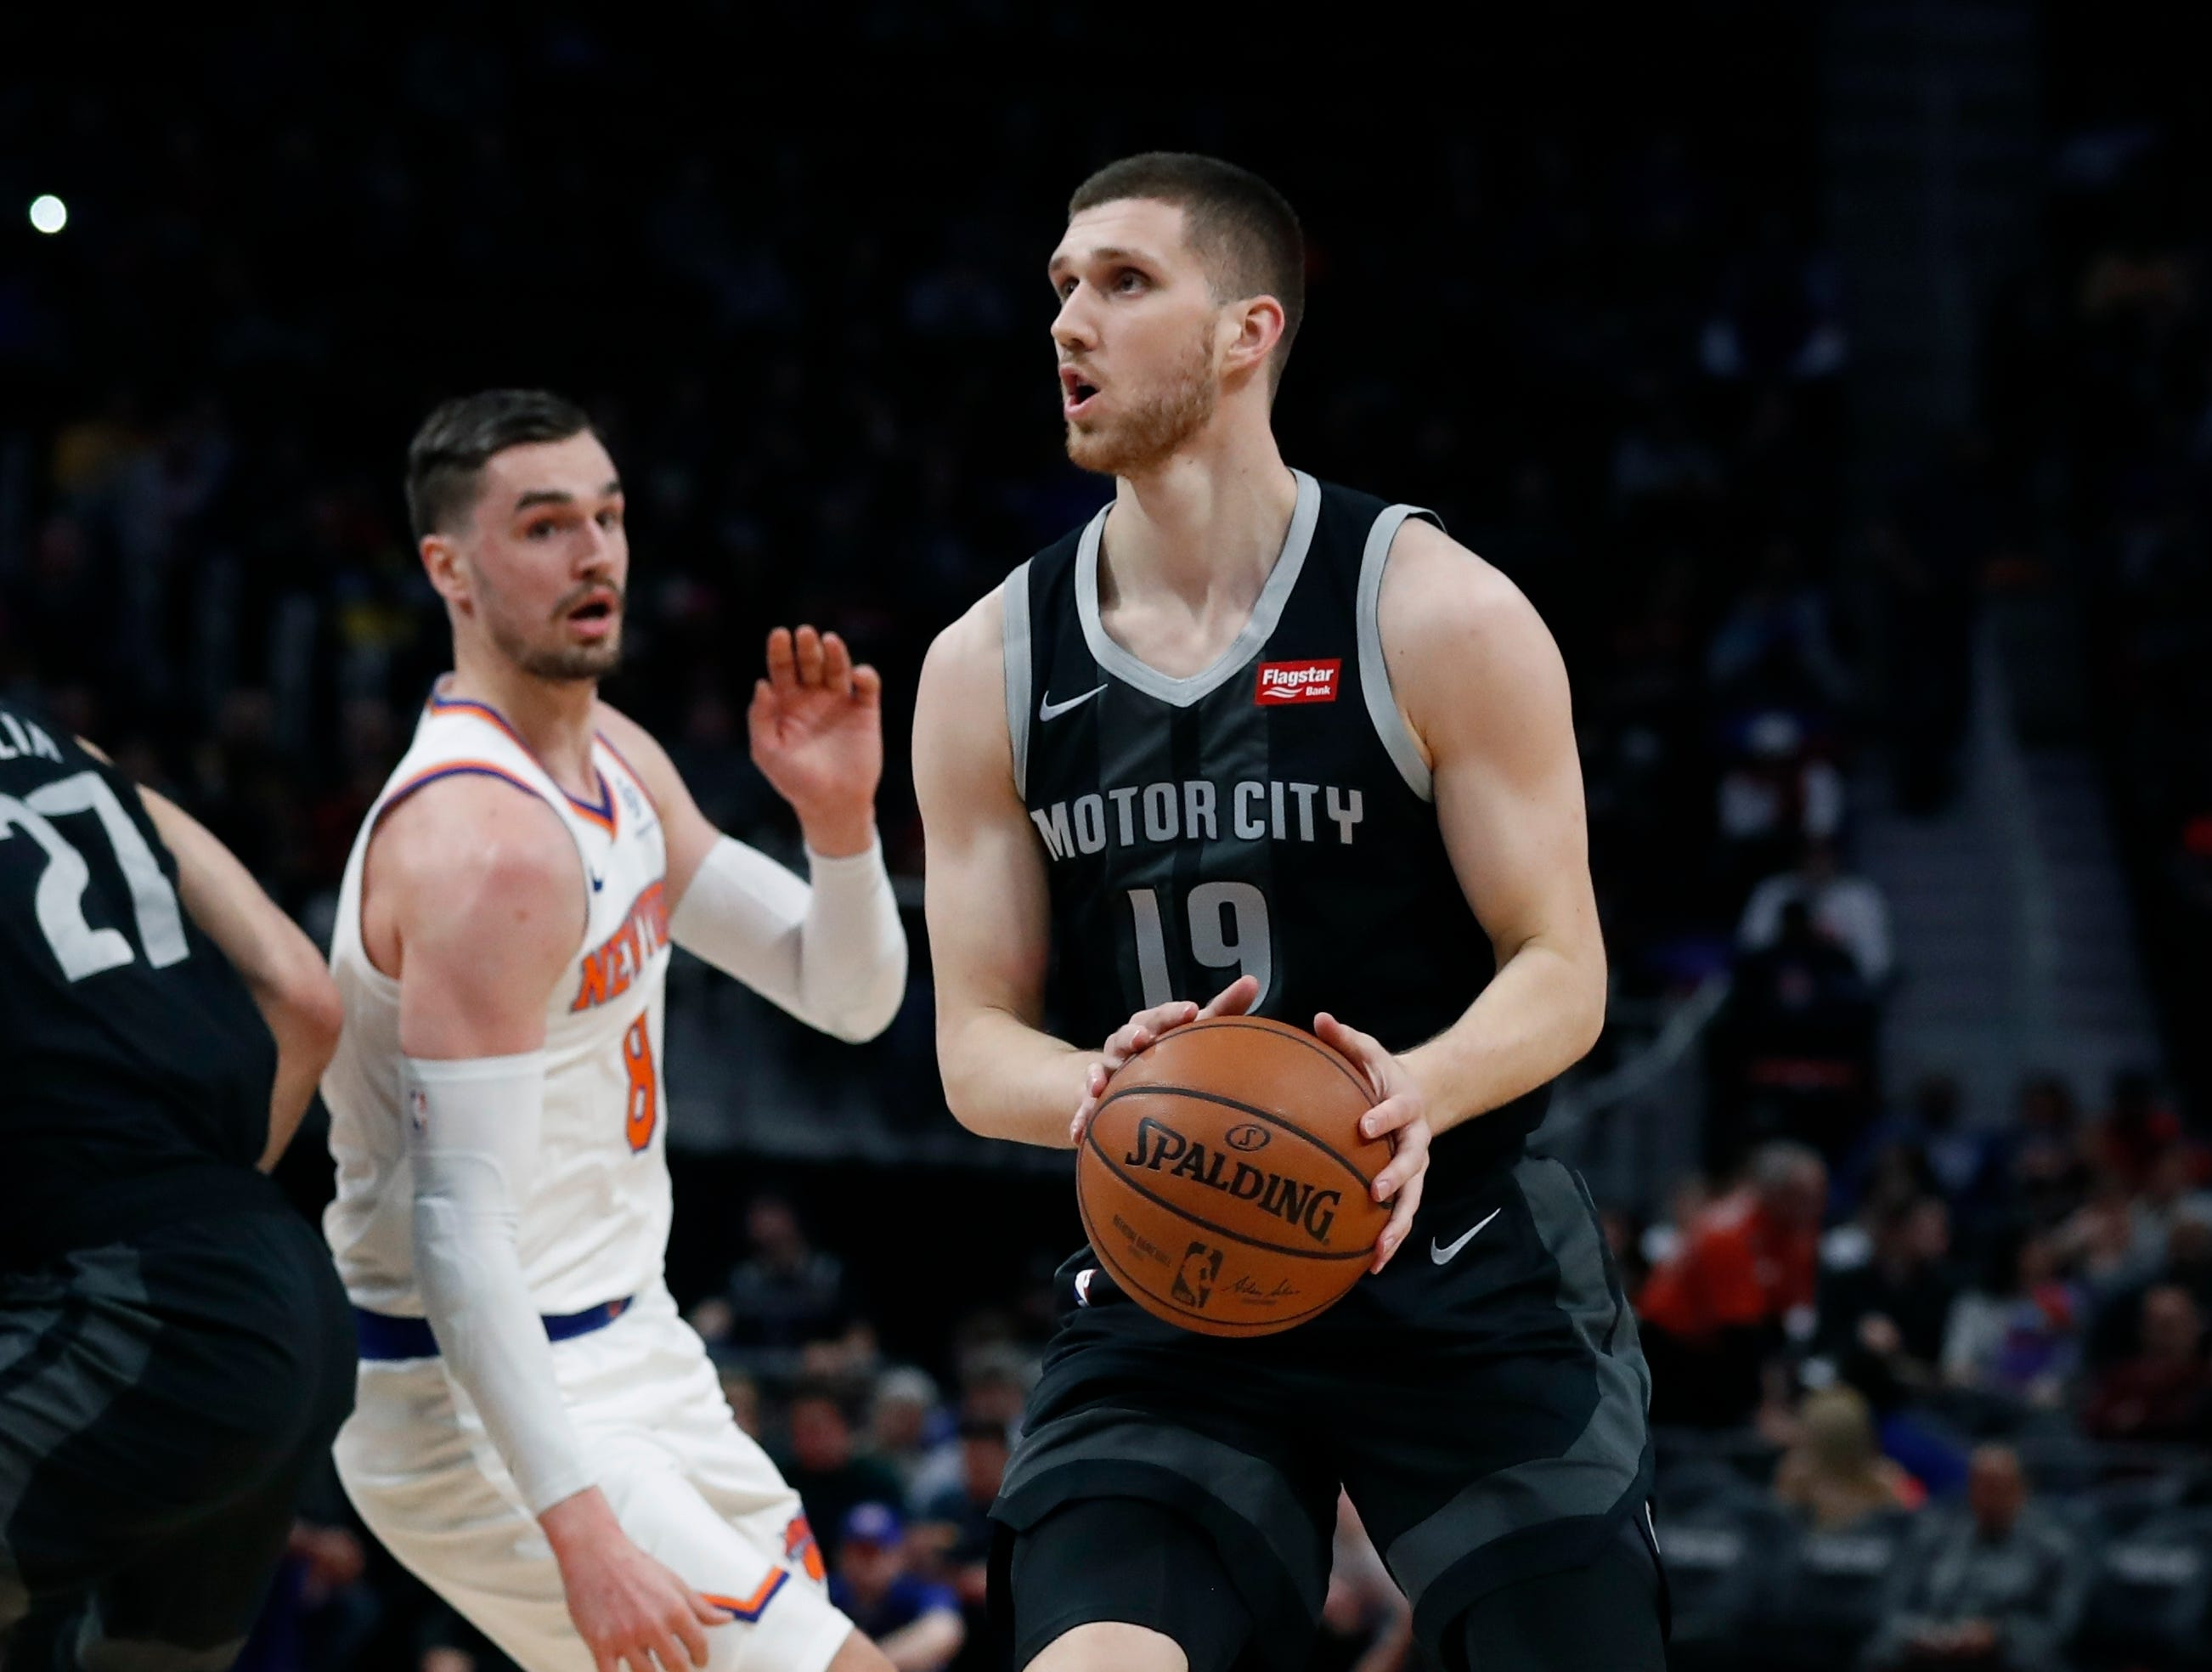 Detroit Pistons guard Sviatoslav Mykhailiuk looks to shoot during the first half of the team's NBA basketball game against the New York Knicks, Friday, Feb. 8, 2019, in Detroit.